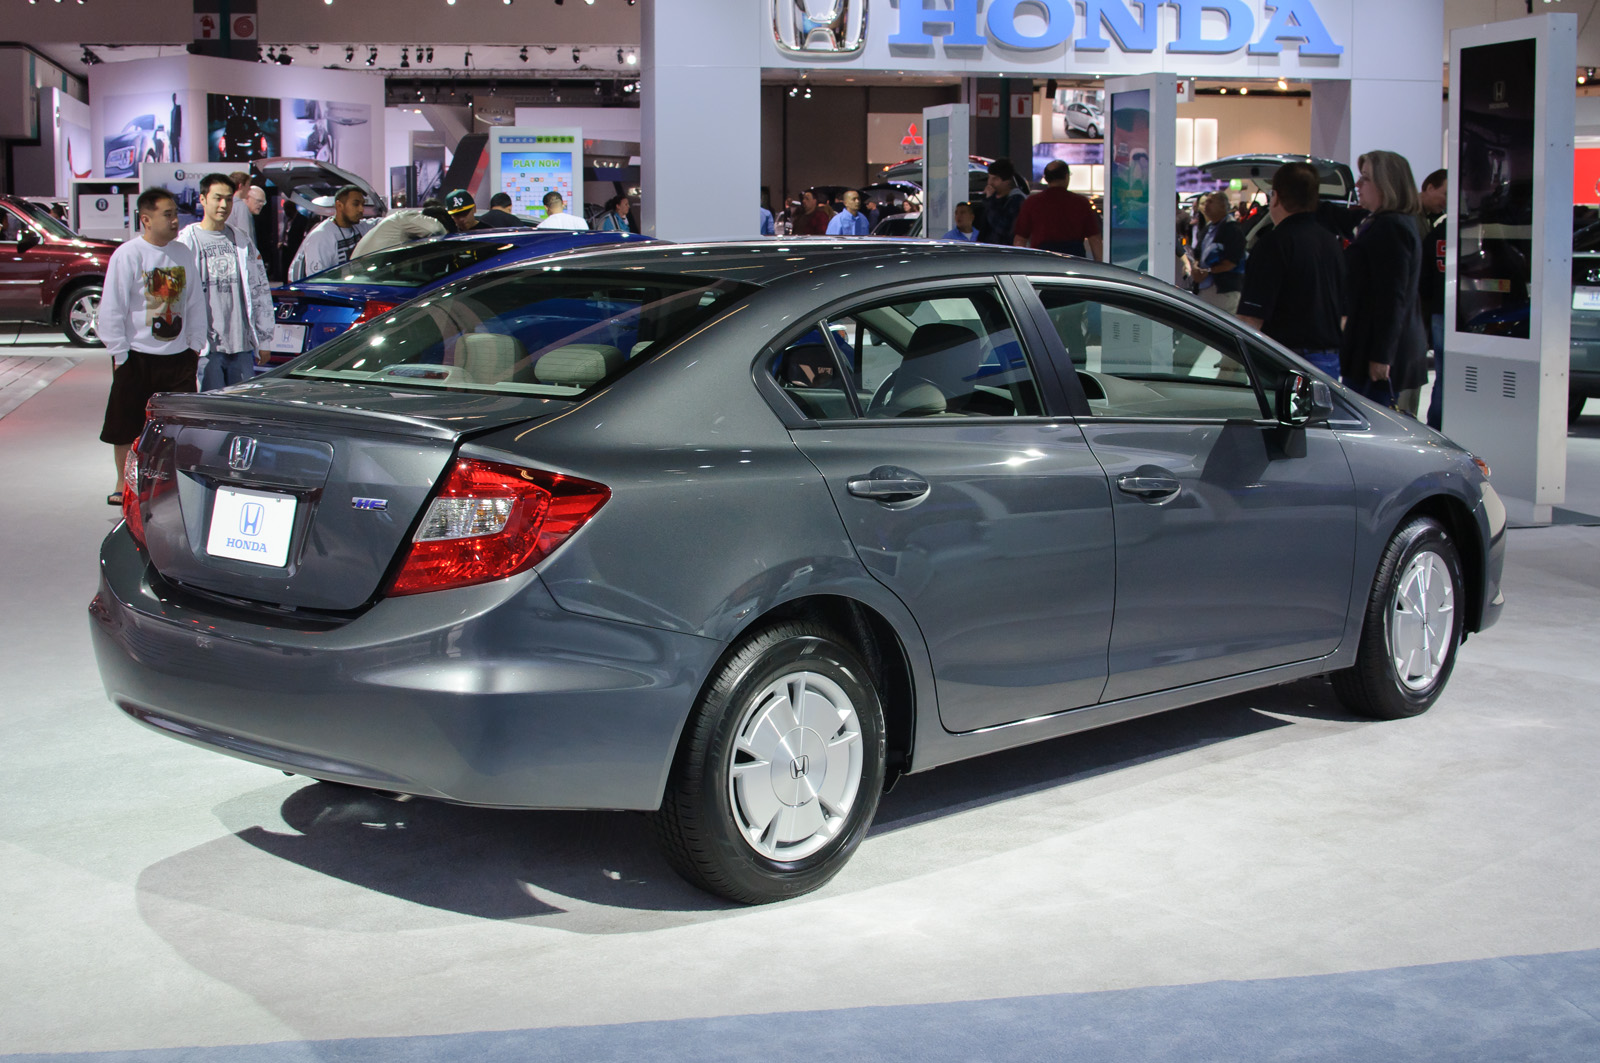 File:Honda Civic HF (US)   Flickr   Skinnylawyer